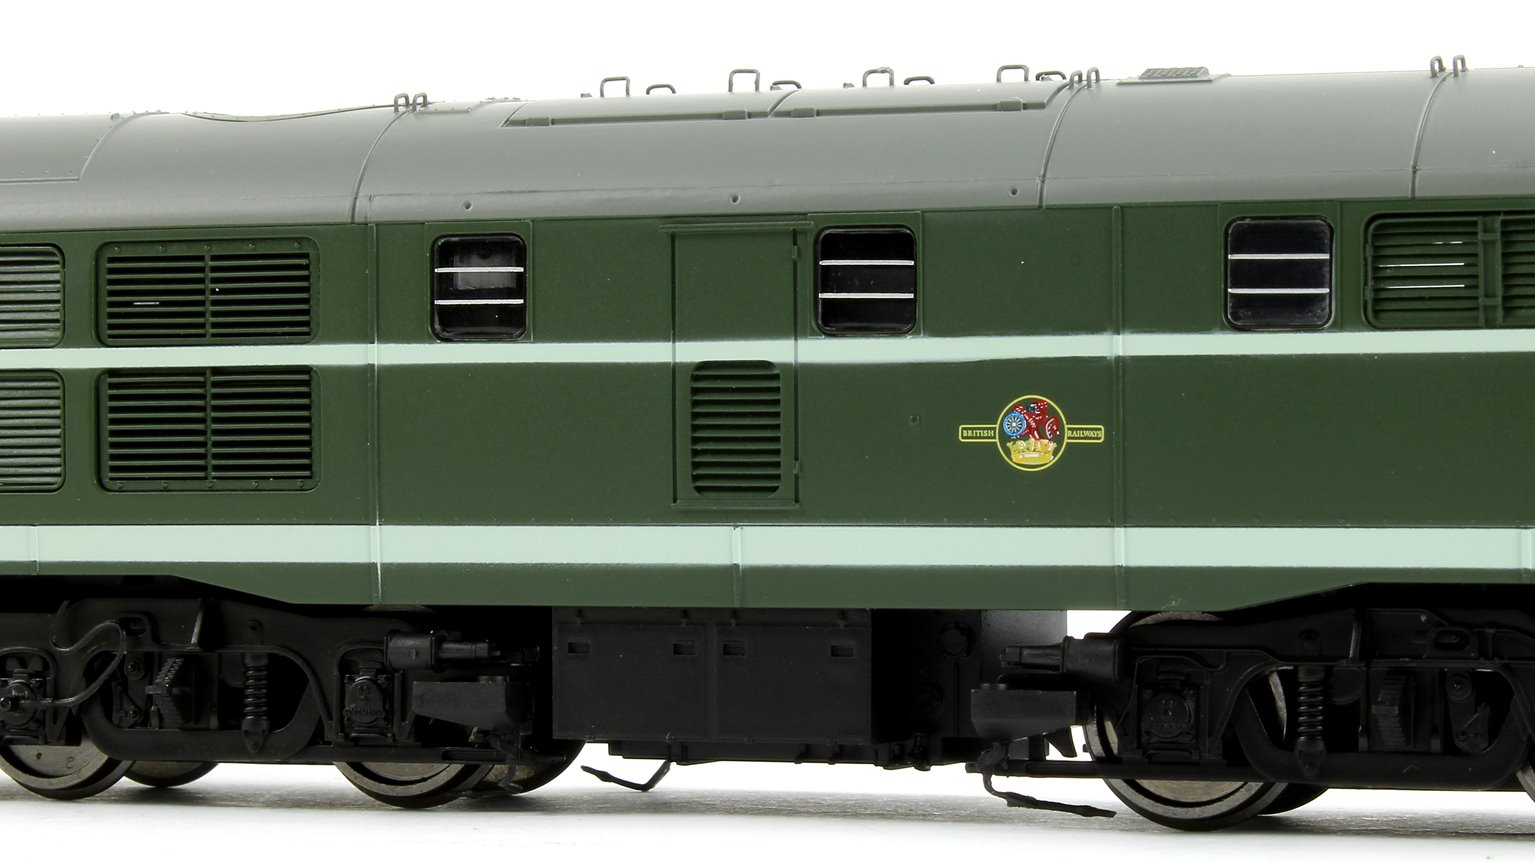 Class 31 - D5509 BR Green AIA-AIA Diesel Electric Locomotive